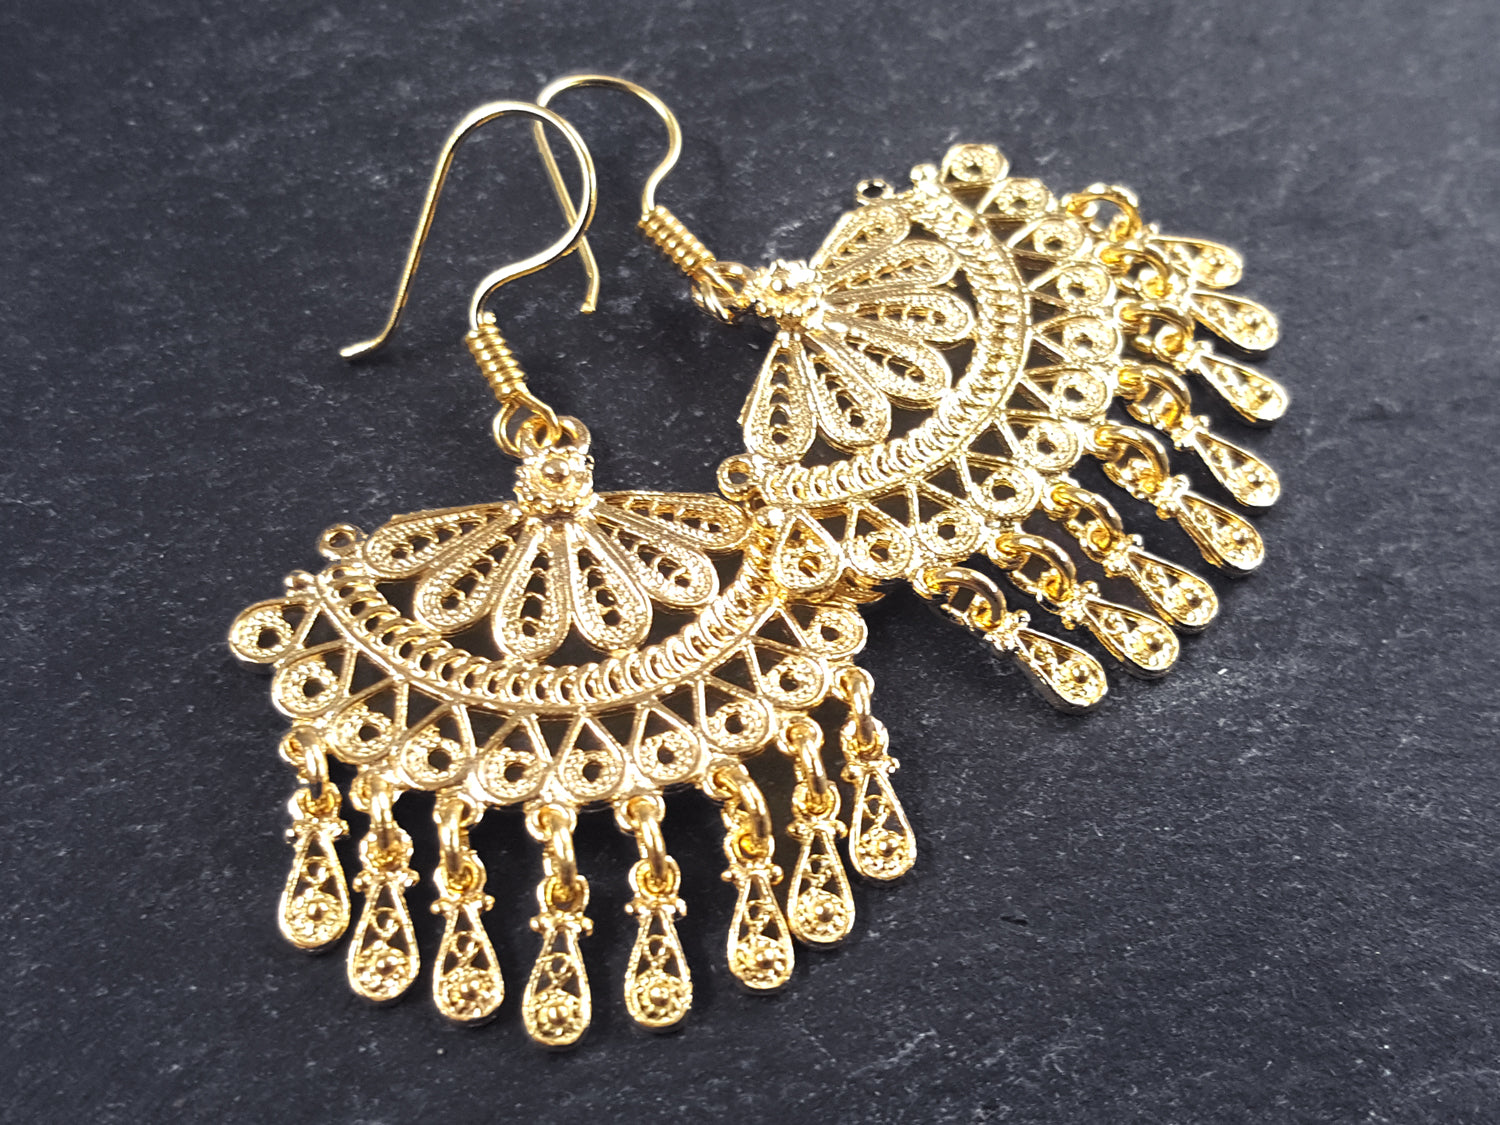 Scallop Fan Shaped Telkari Dangly Gold Ethnic Boho Earrings